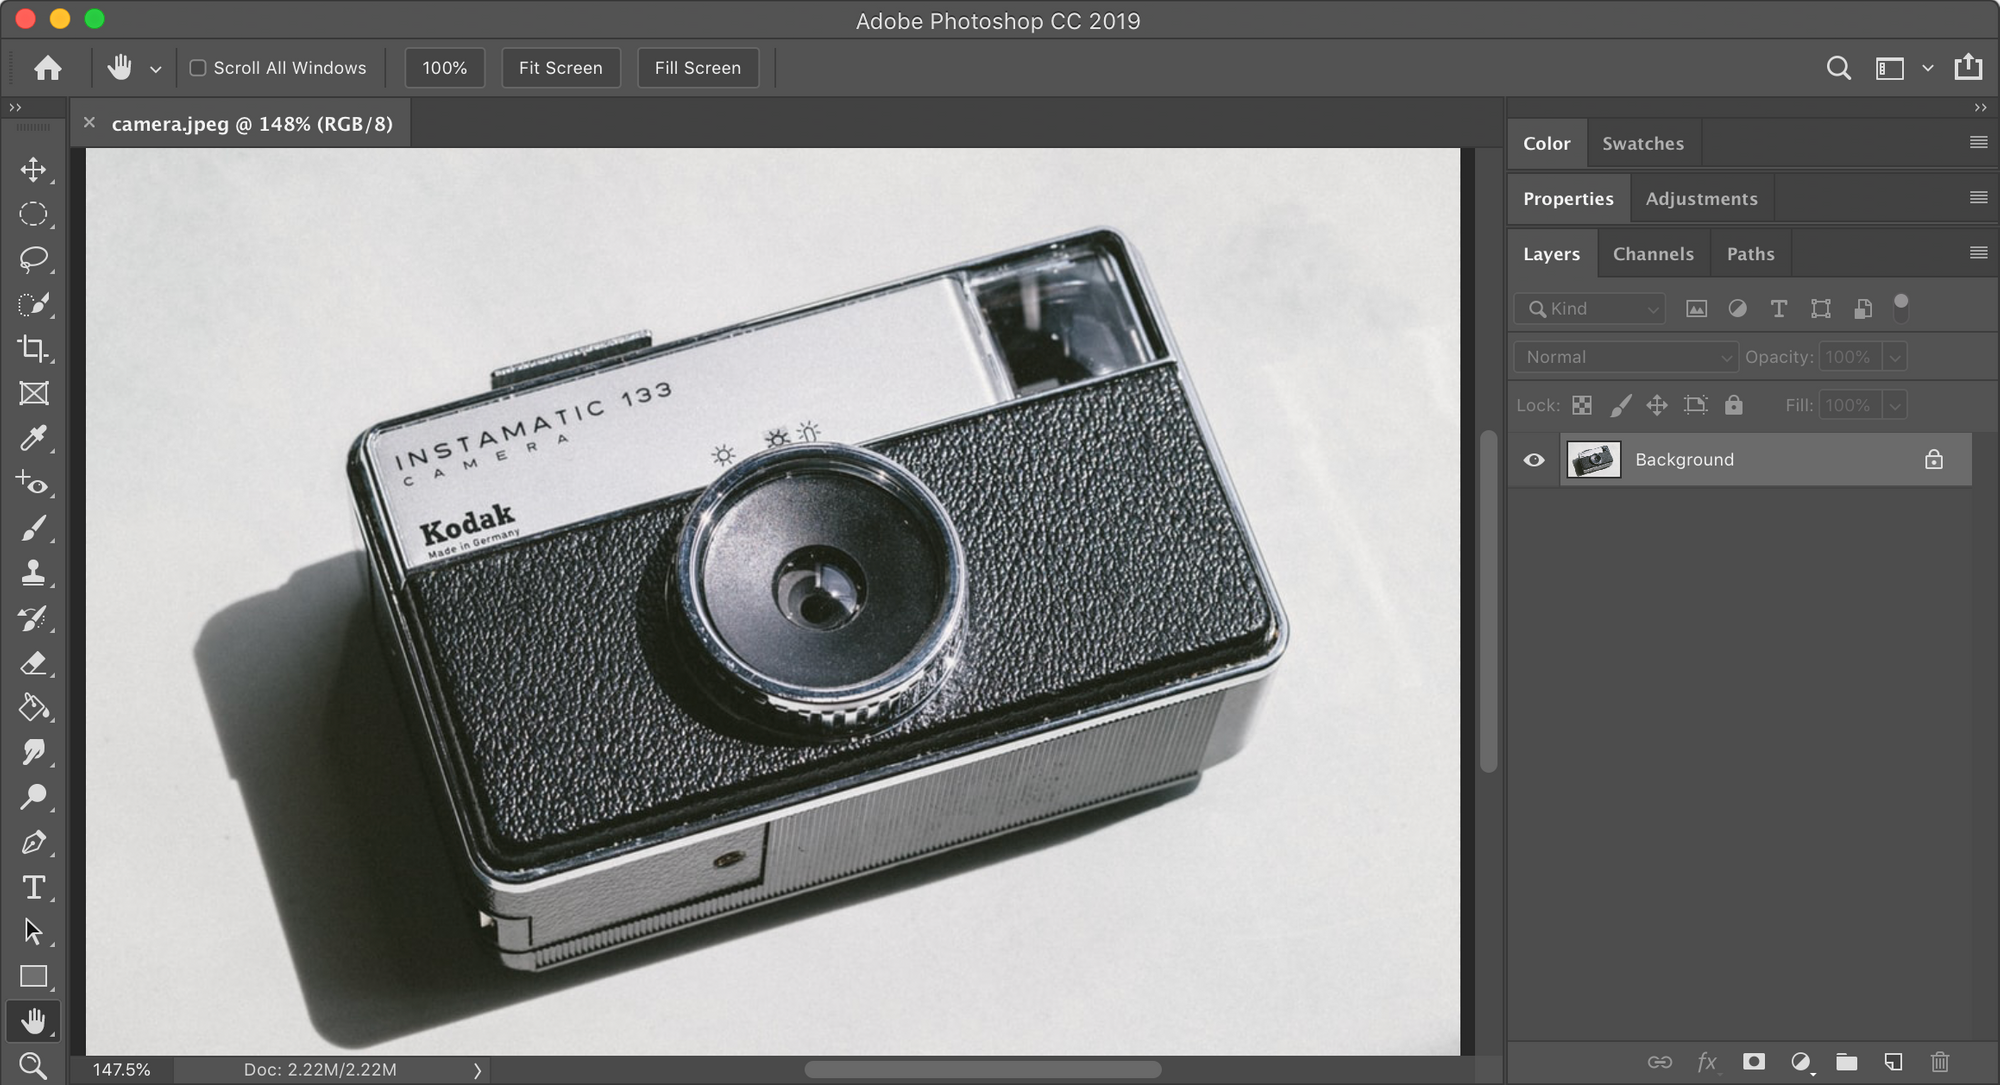 How to Use Photoshop - Free Tutorials to Get You Started